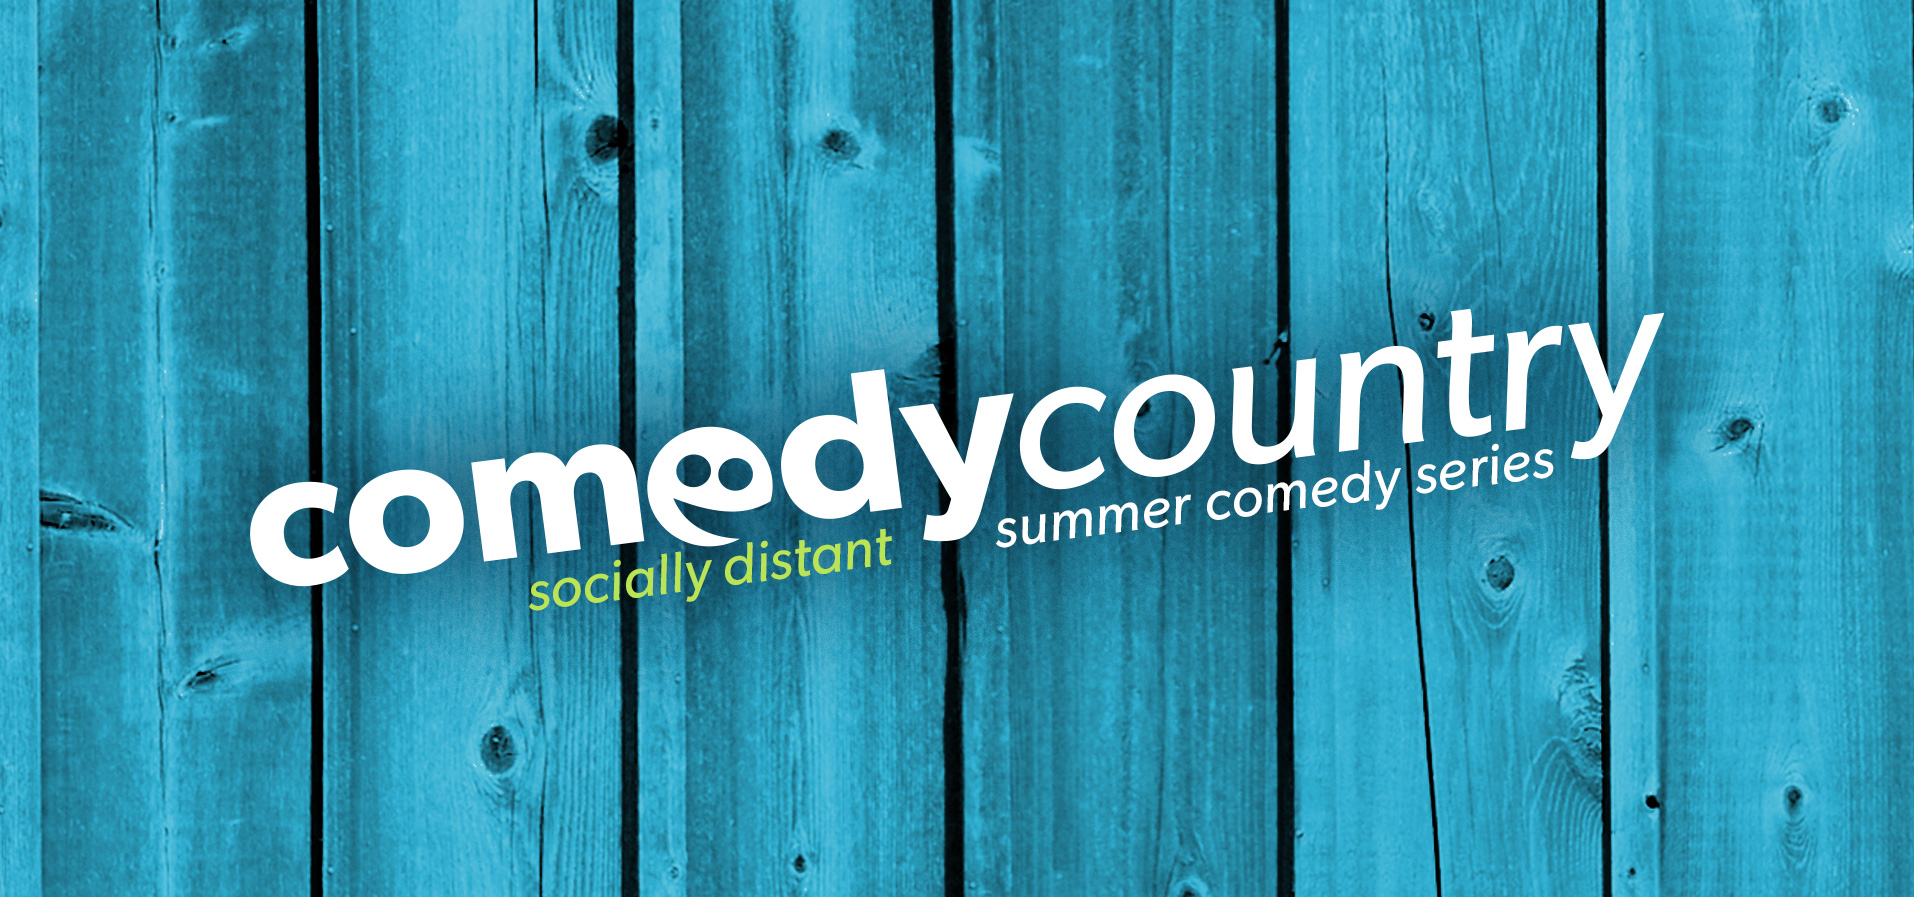 Comedy Country – The County's (Socially Distant) Summer Comedy Series